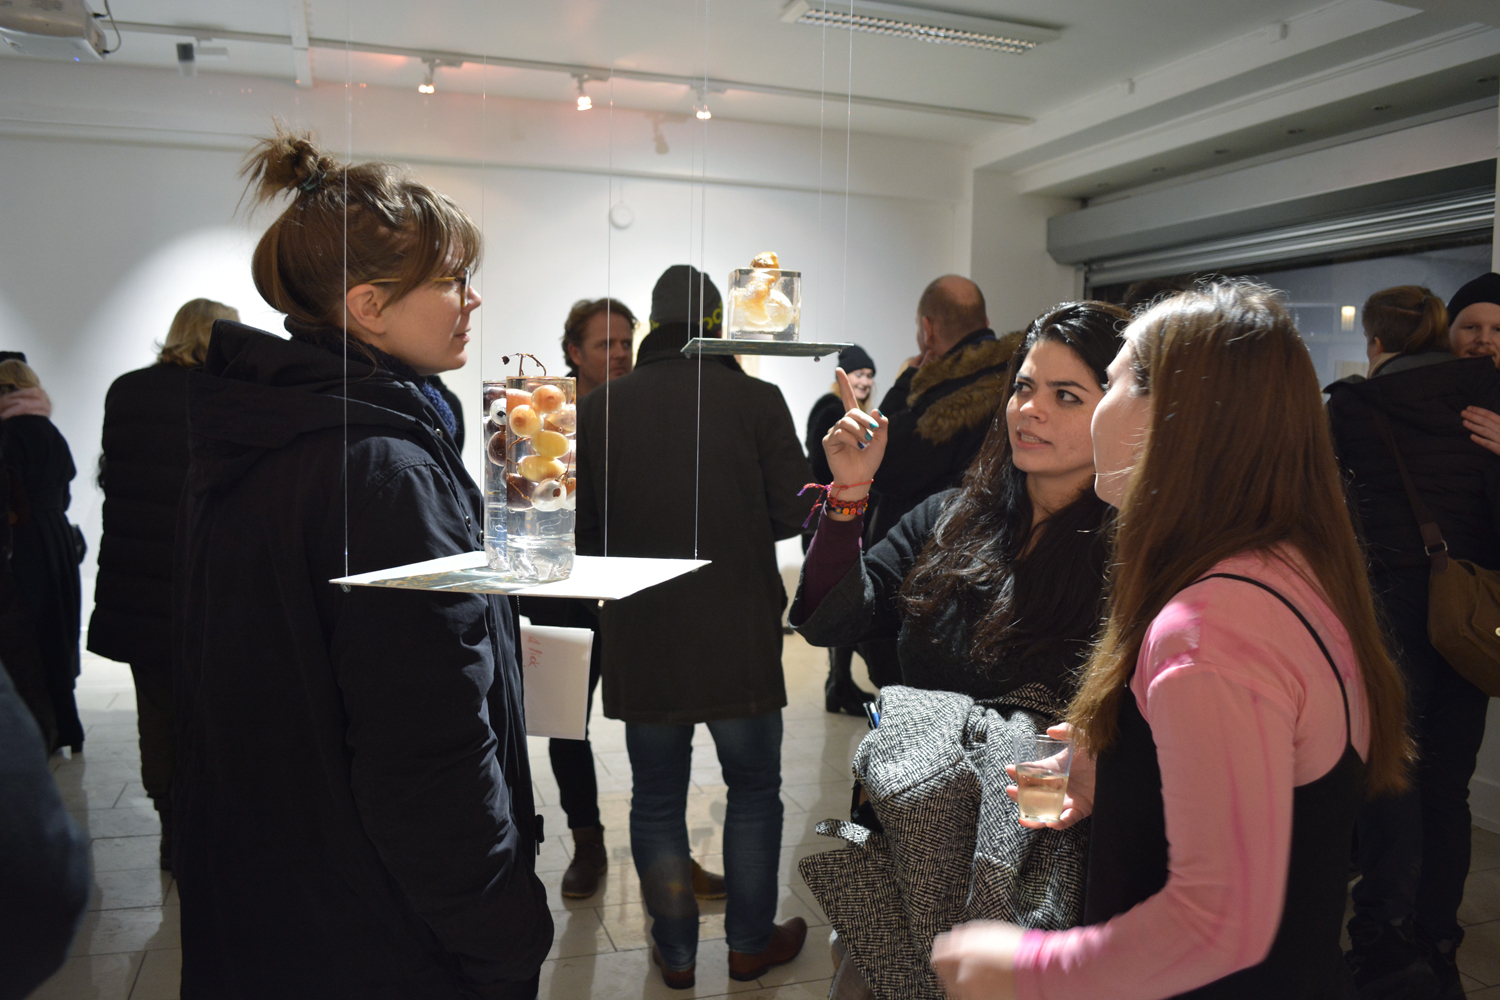 a-lick-and-a-promise-vernissage-9-web.jpg